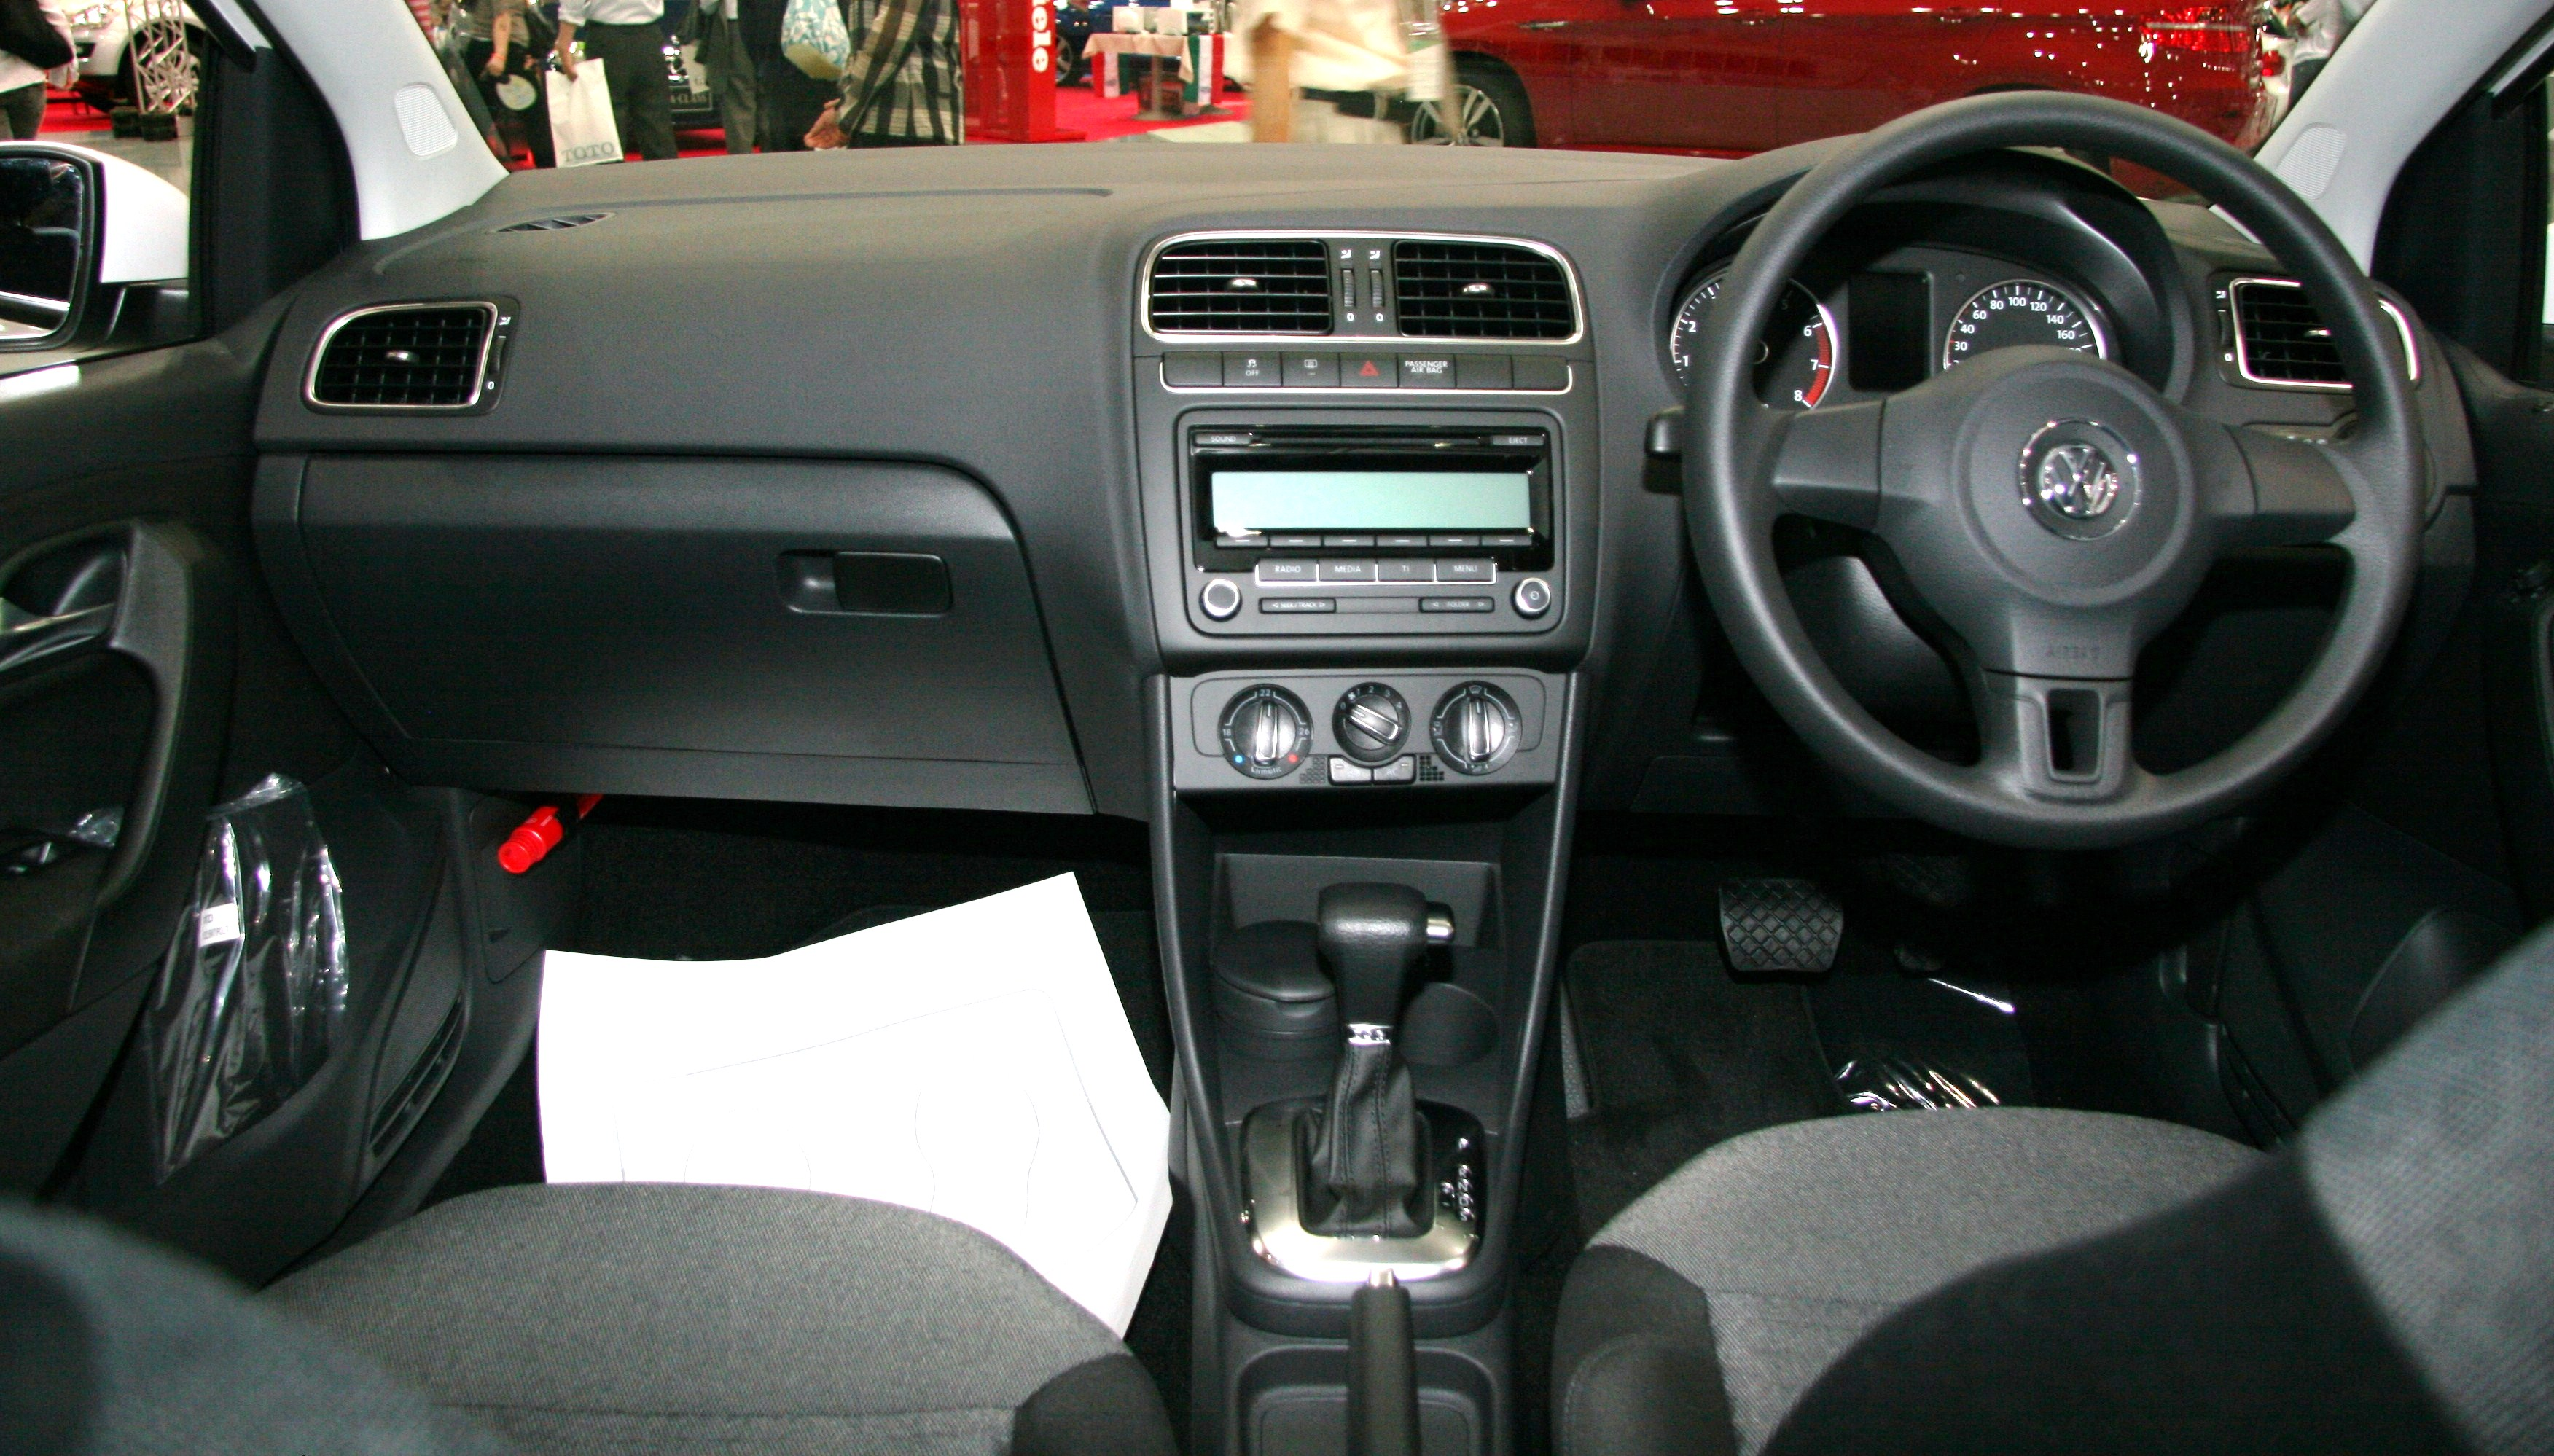 FileVolkswagen Polo V Interior